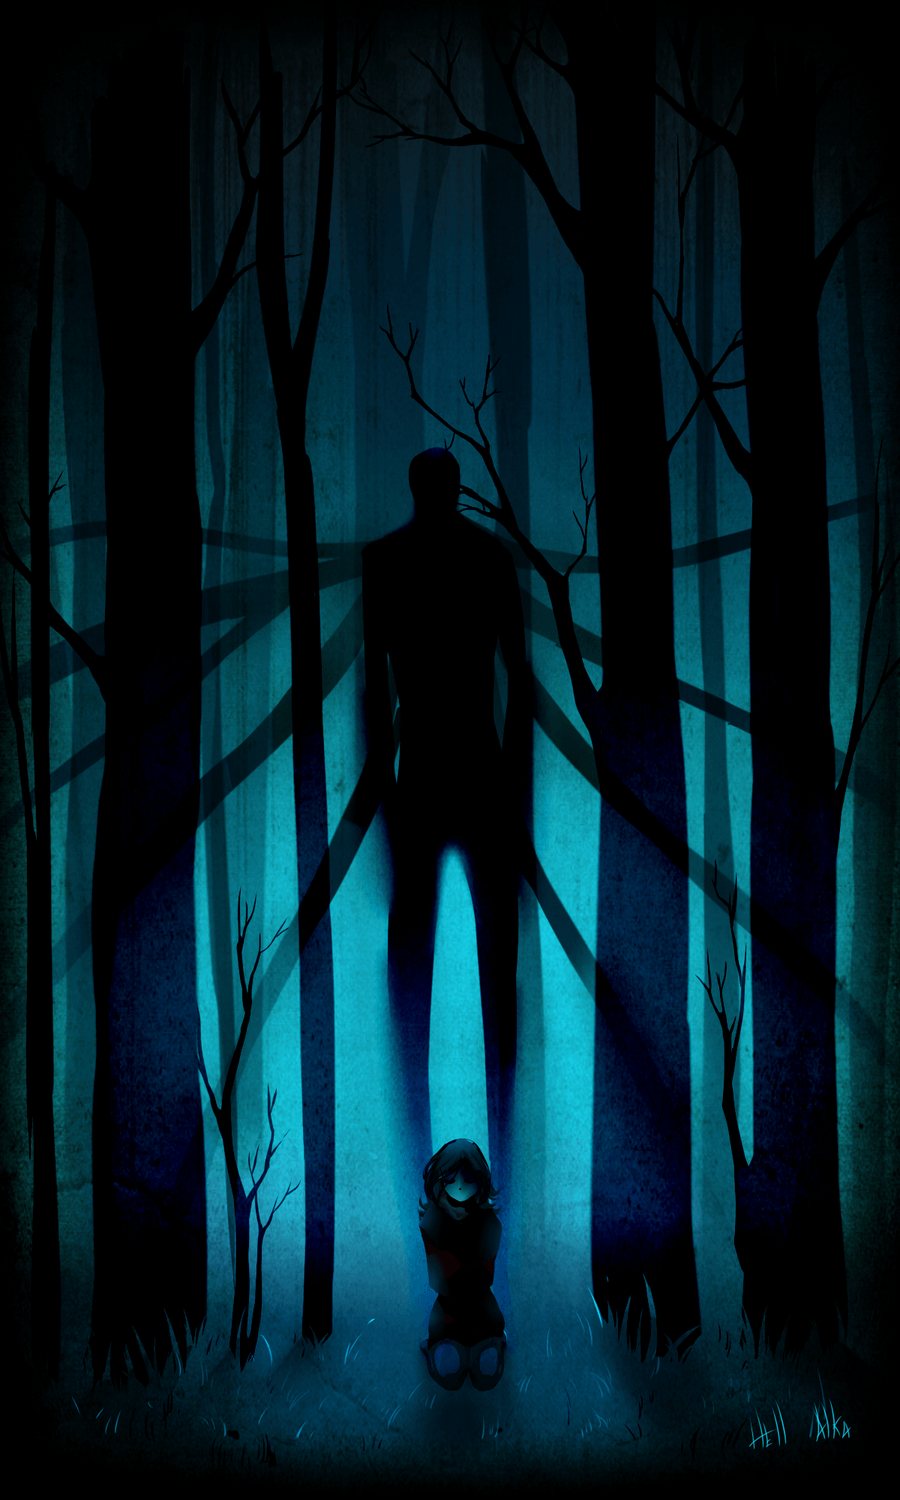 Slender Man Favourites By Gustybv On DeviantArt